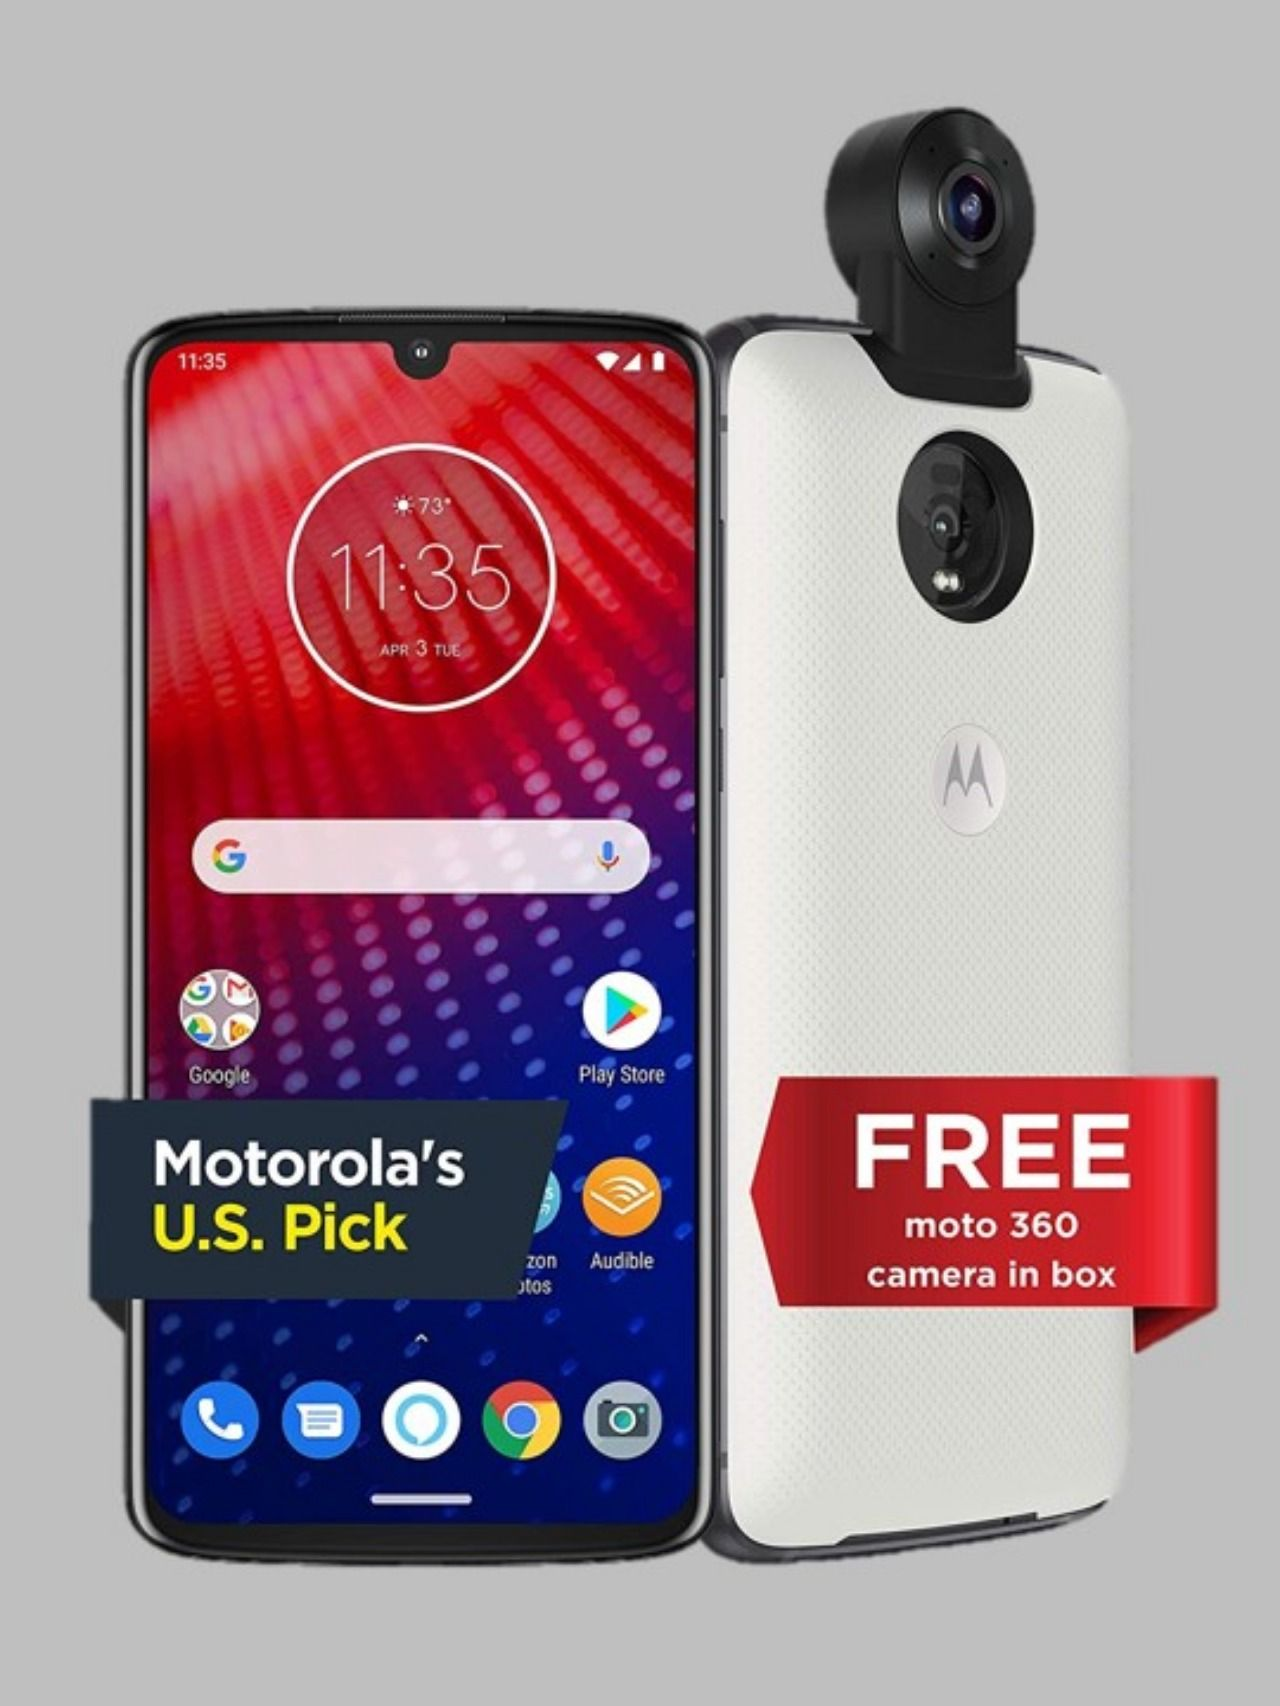 Moto Z4 Metropcs Specs And Price Best 48mp Camera Phone Of 2019 Gadgets Finder Boost Mobile Phone Mobile Phone